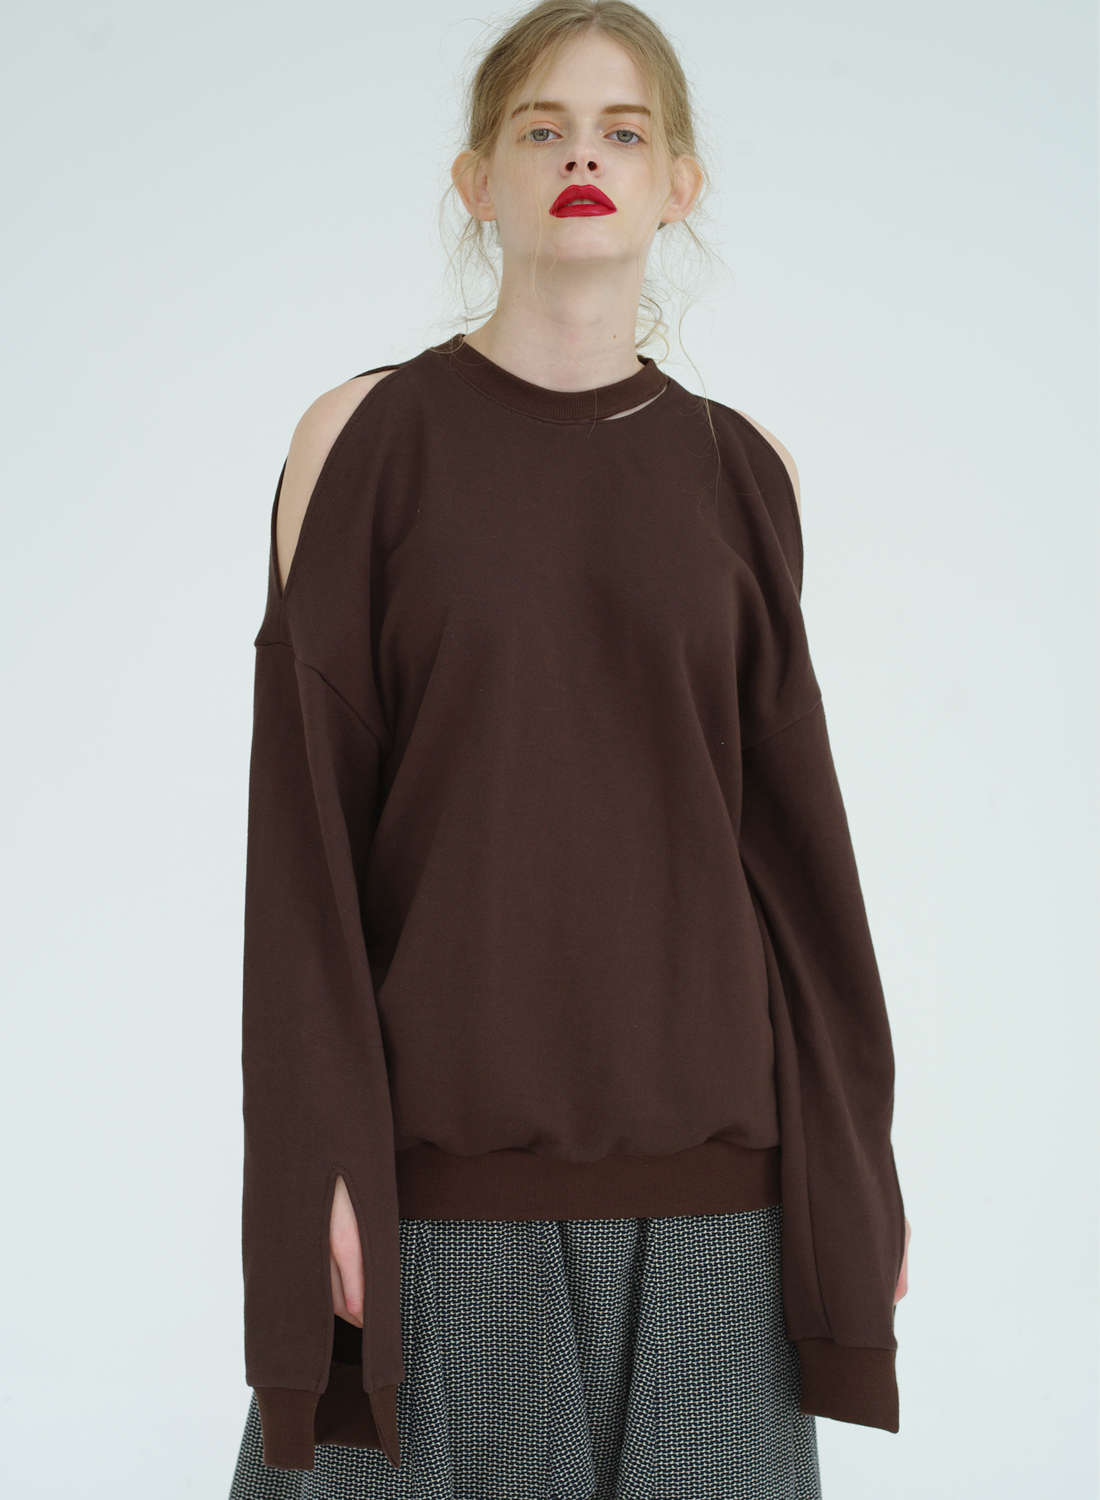 FW16 SLIT SWEATSHIRT DARKBROWN